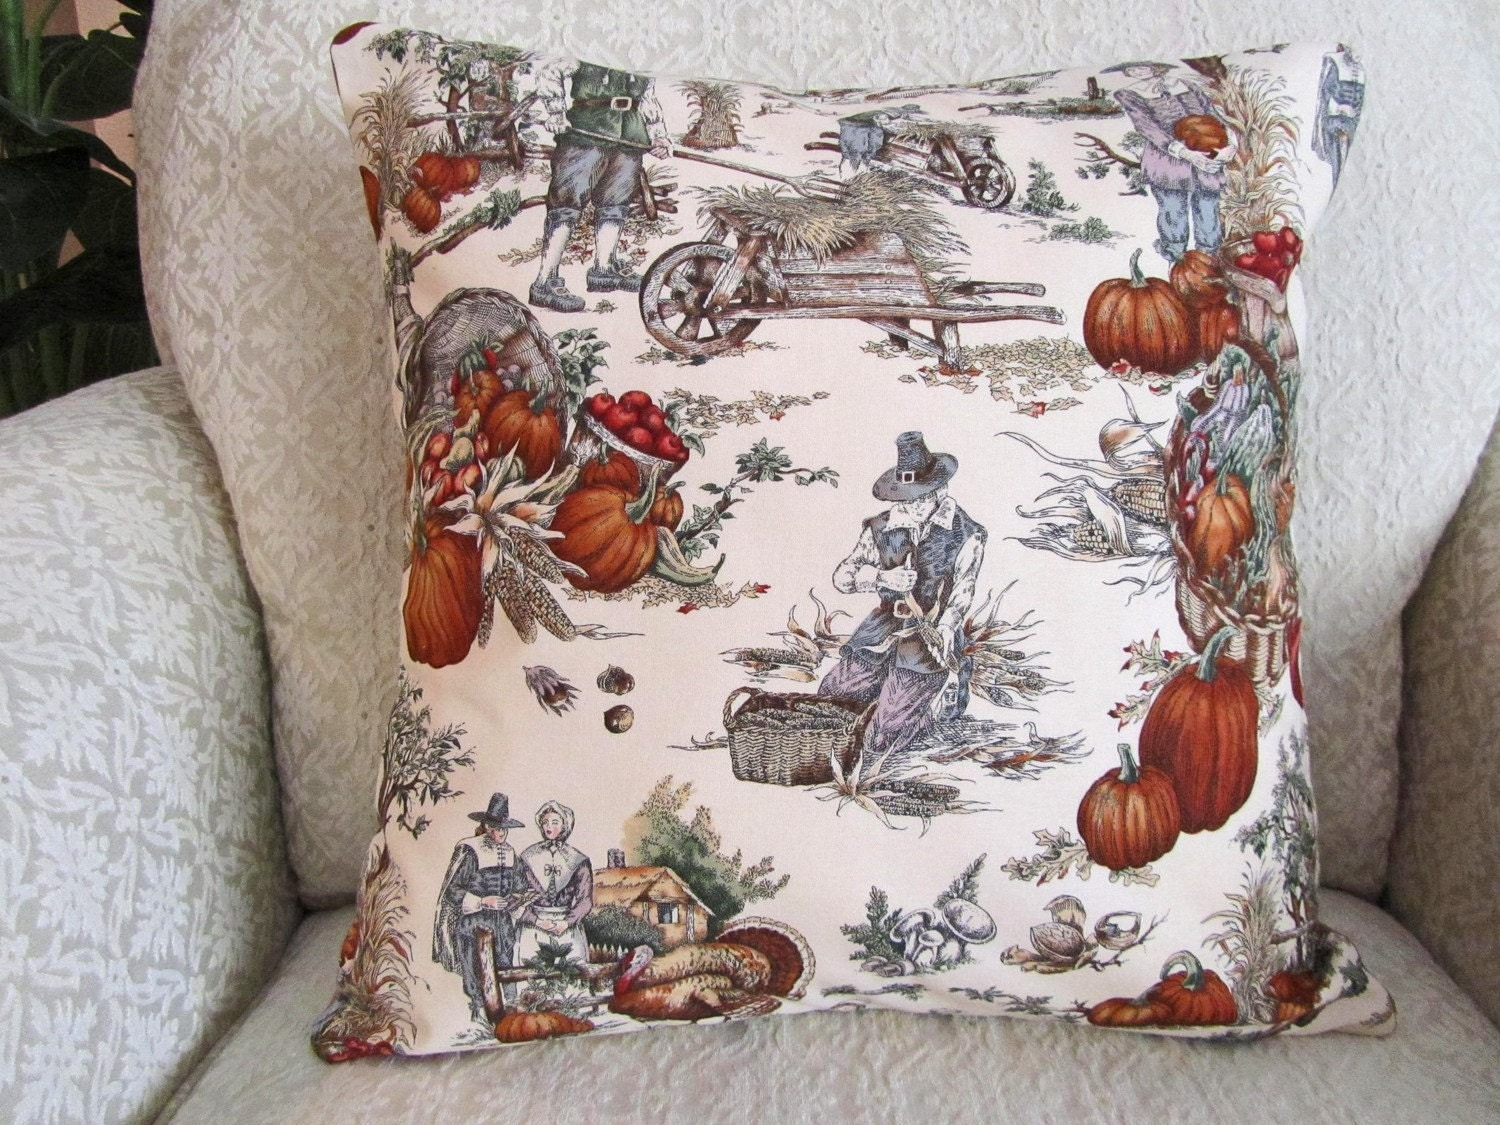 Decorative Throw Pillow Cover Red Pumpkin Brown Beige 16 x 16